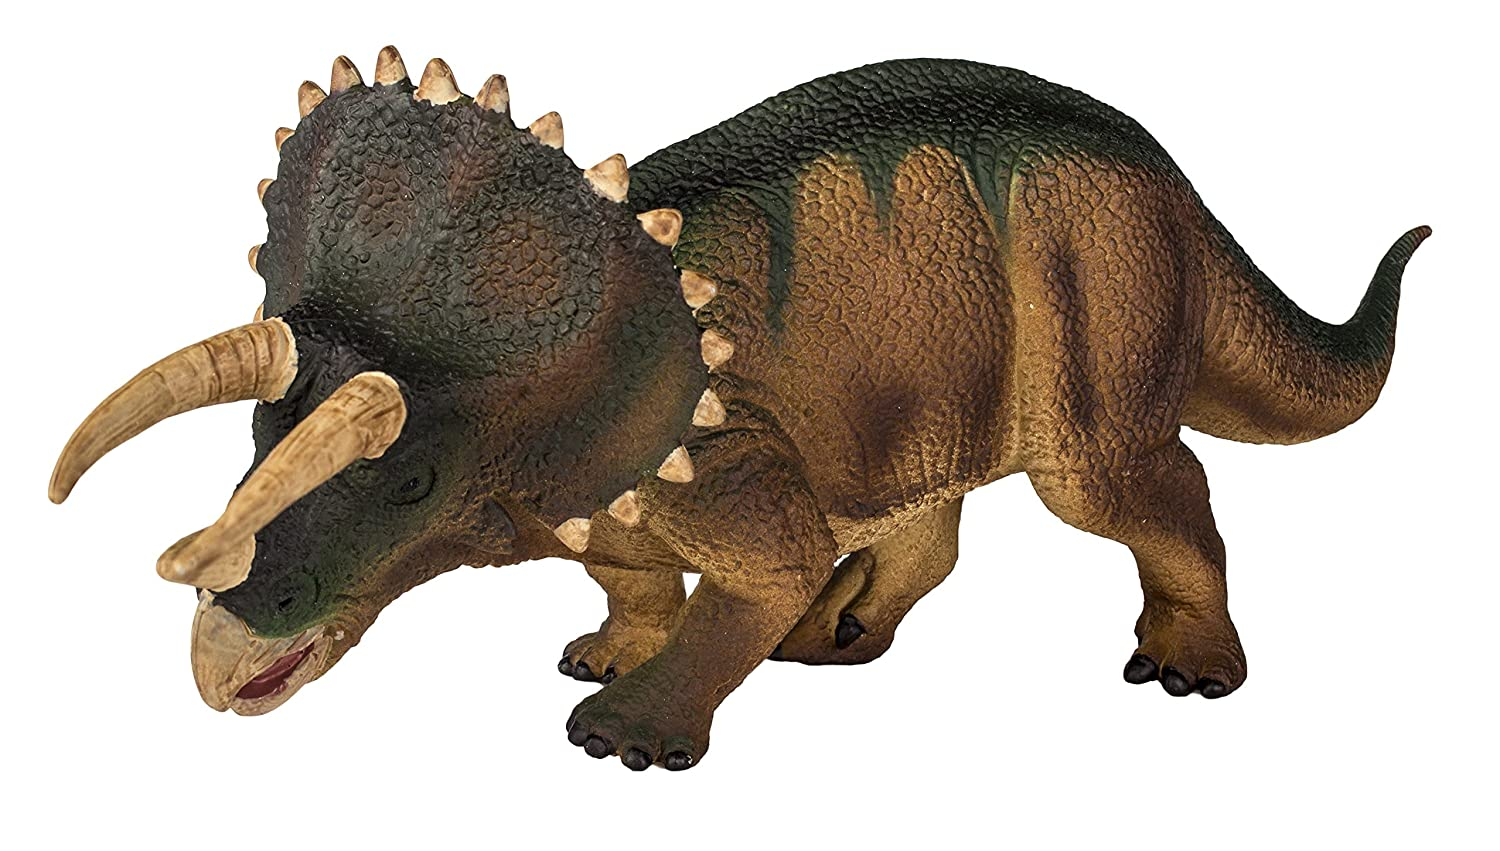 amazoncom safari ltd wild safari triceratops toys games